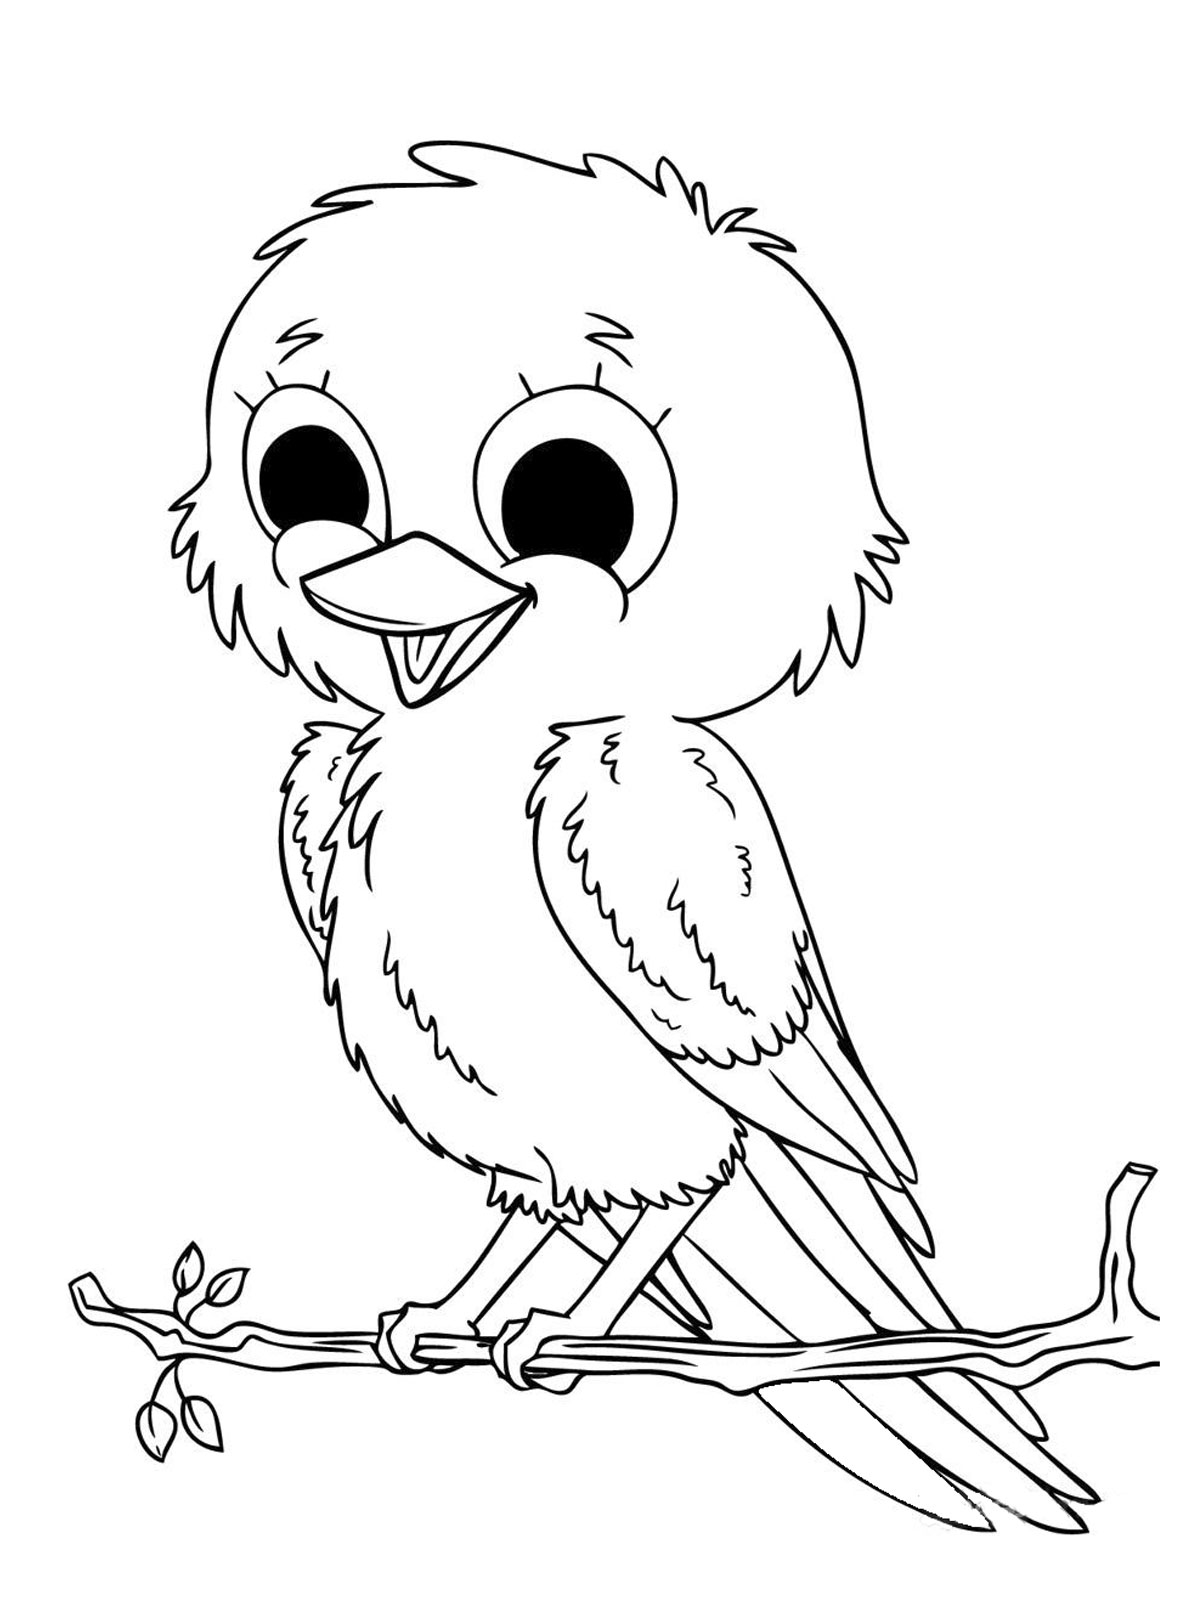 animal coloring pages free - photo#2